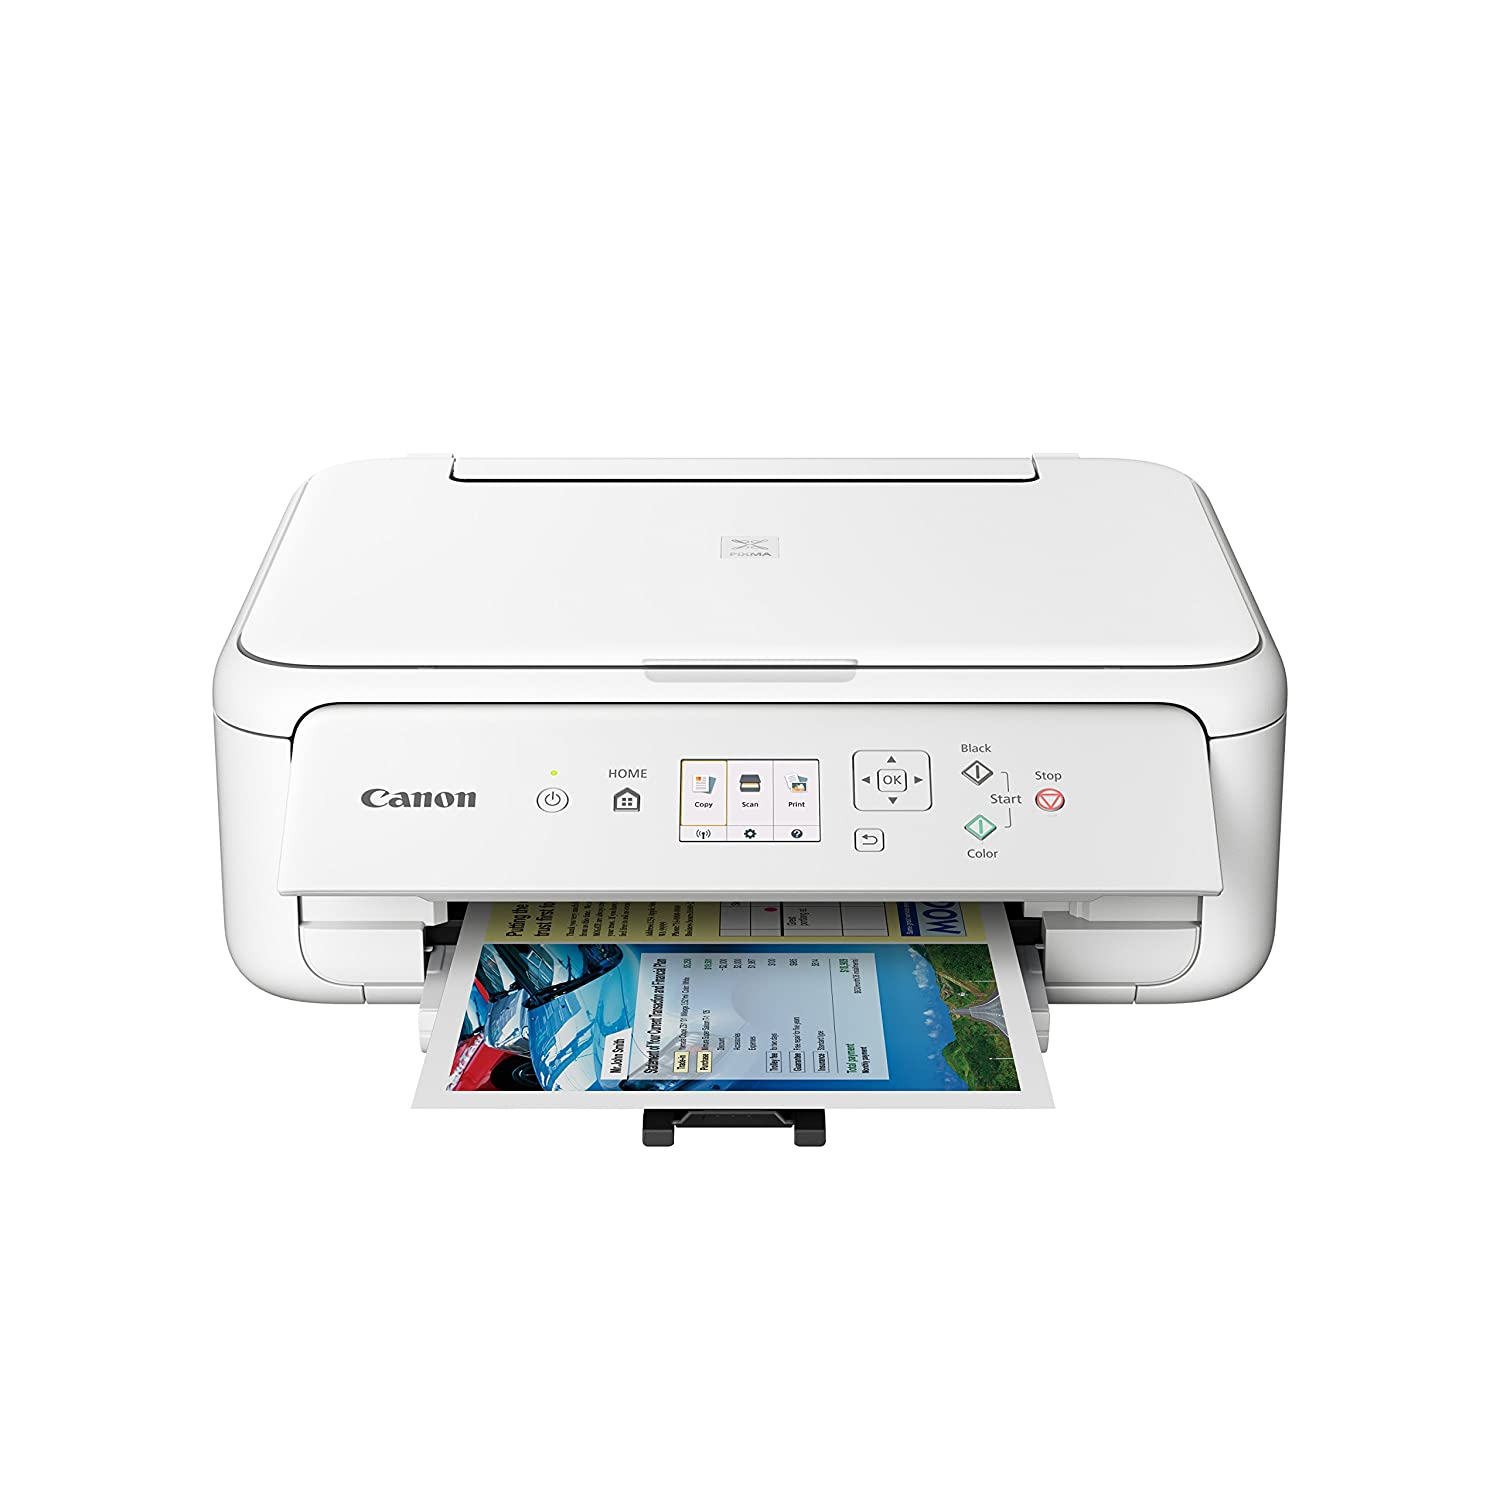 Canon PIXMA TS5120 Wireless Color Photo Printer with Scanner & Copier - White and CLI-280XXL Black Ink bundle